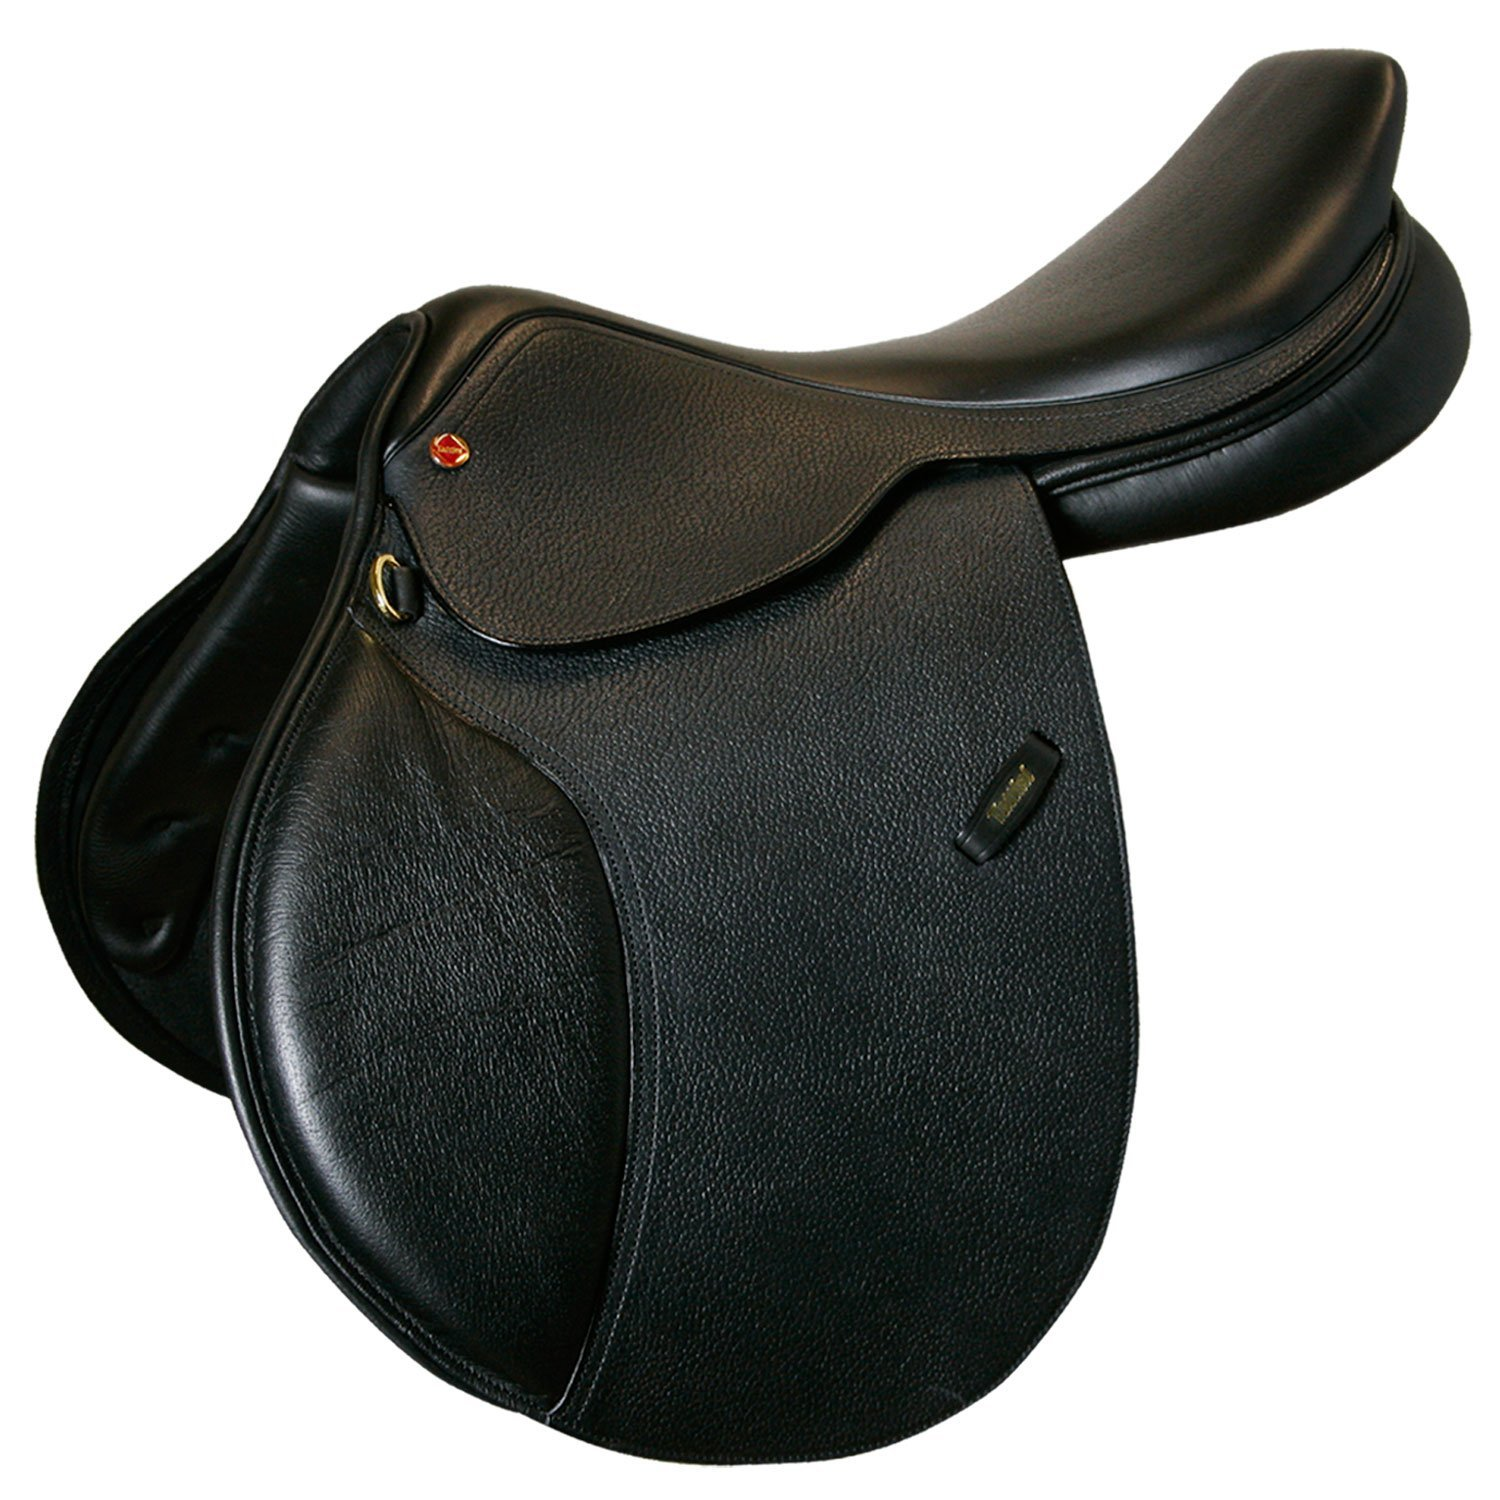 TATTINI - CARDIFF saddle